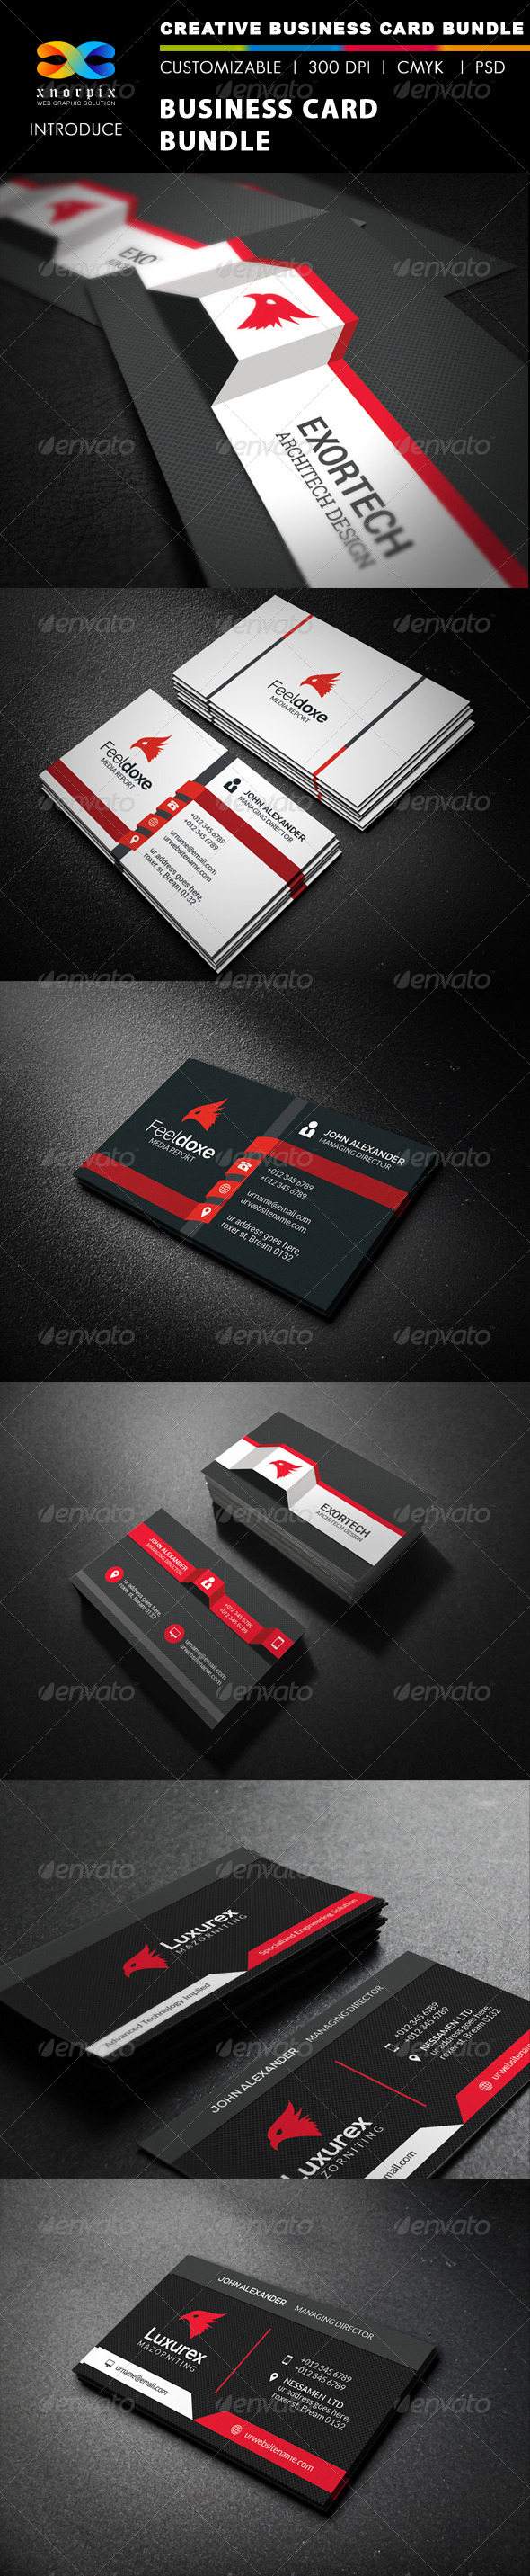 GraphicRiver Business Card Bundle 3 in 1-Vol 37 8187148